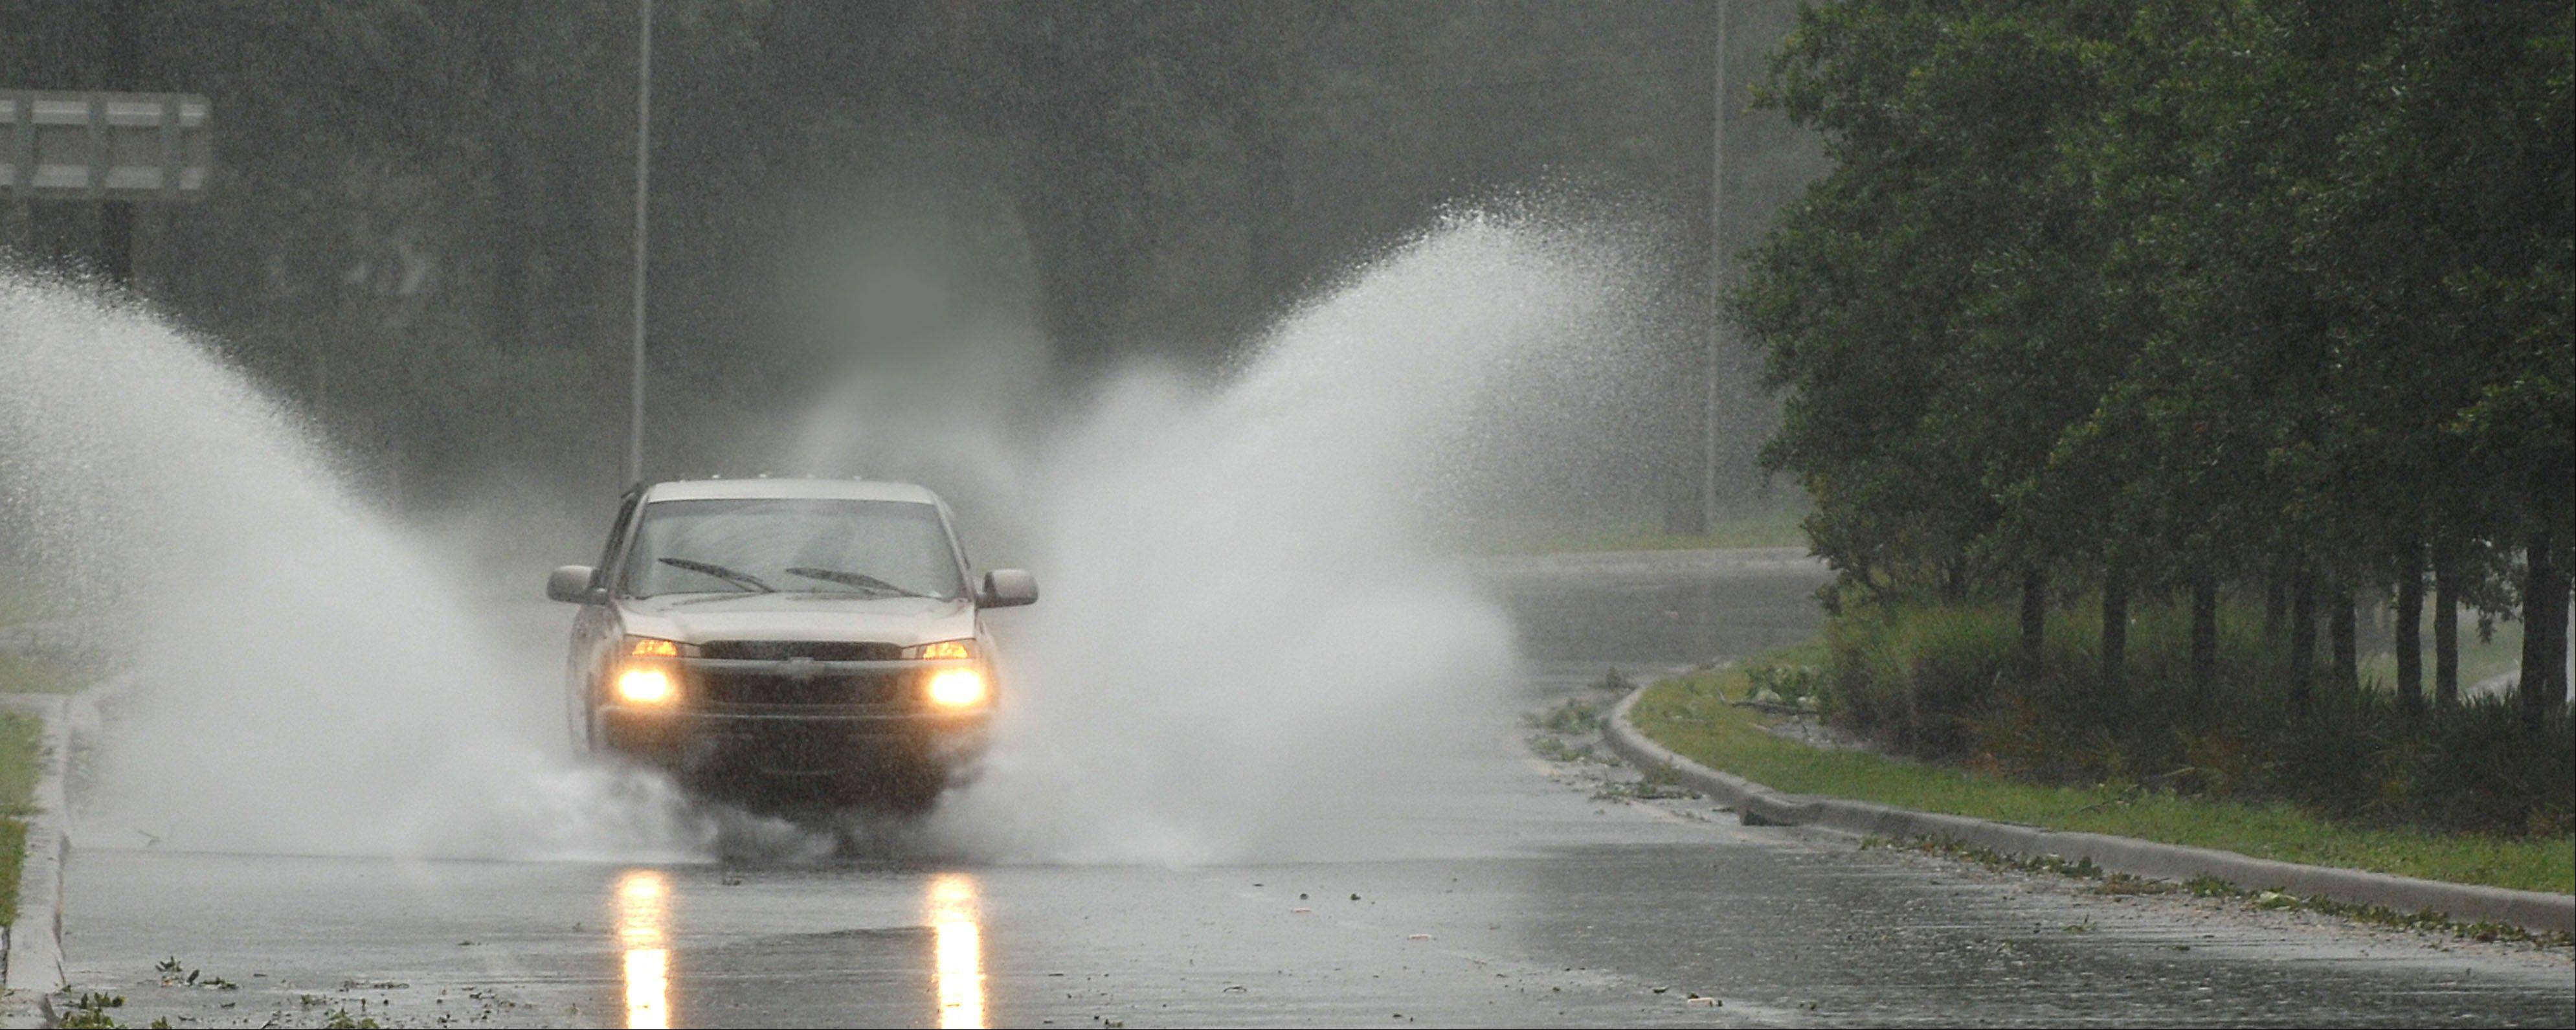 A truck plows through standing water in Jacksonville, Fla., Monday as Tropical Storm Beryl blew through.